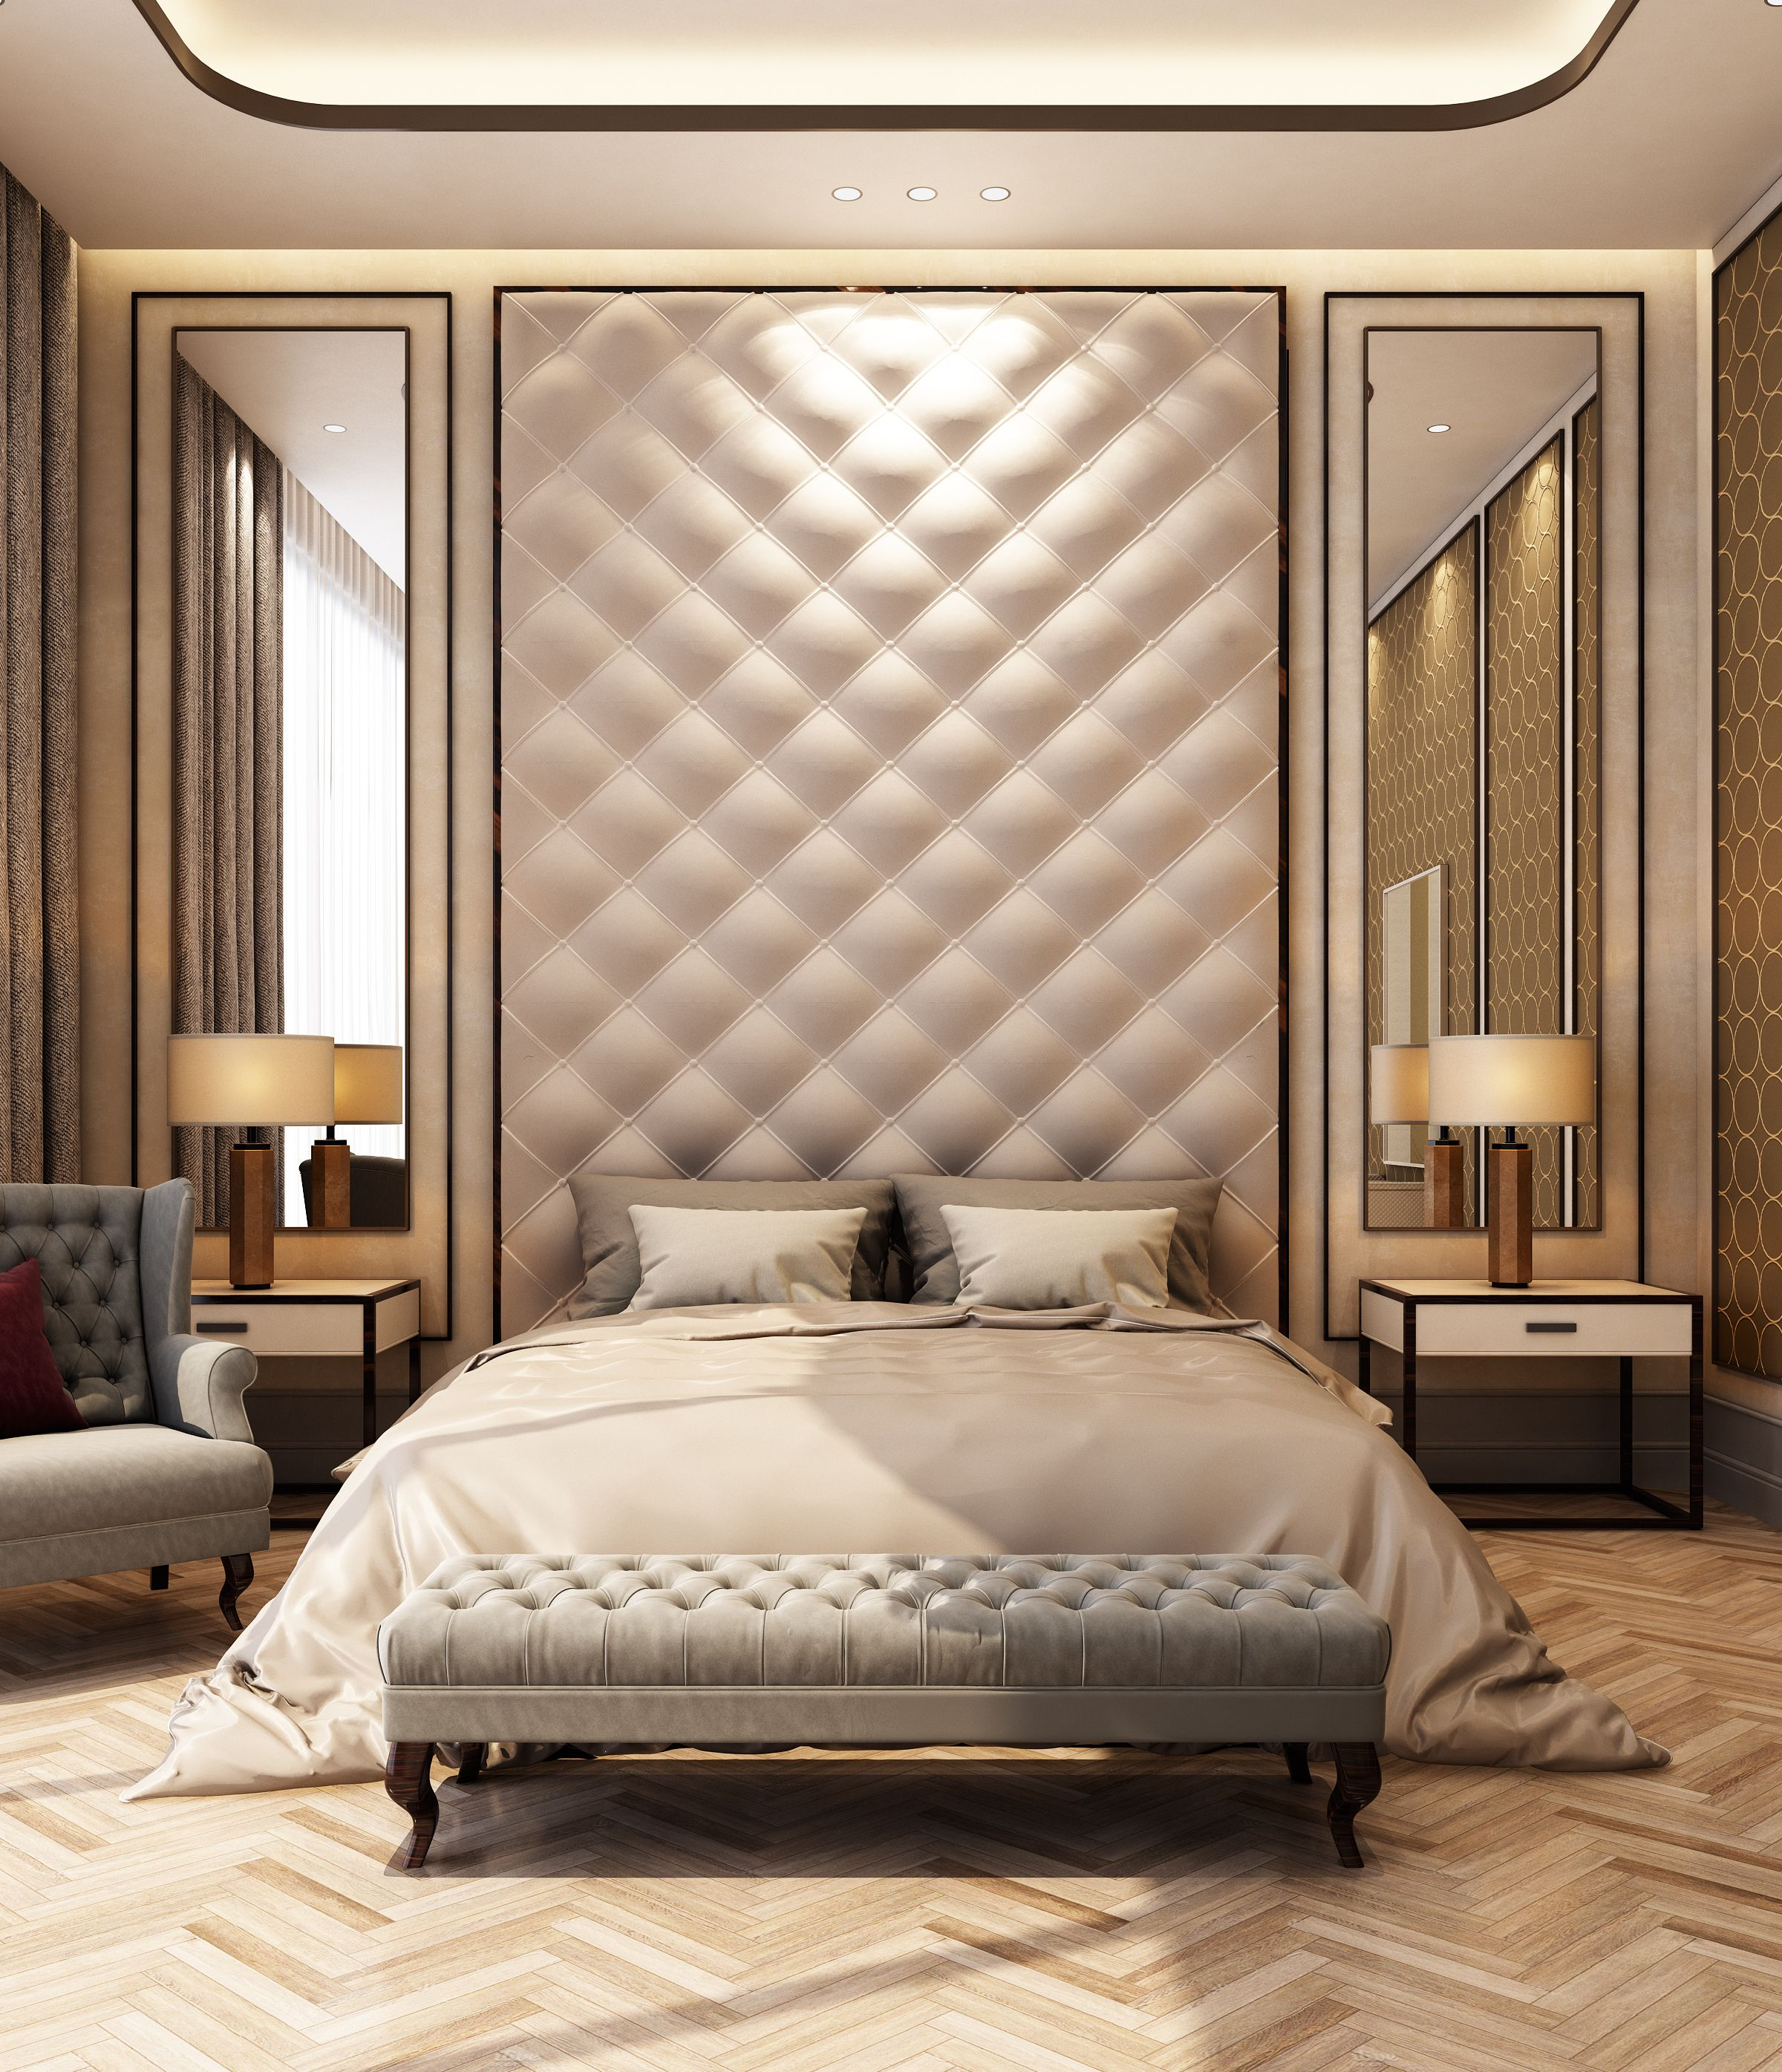 Best Luxury Bedroom Suite Love The Upholstered Wall And 400 x 300